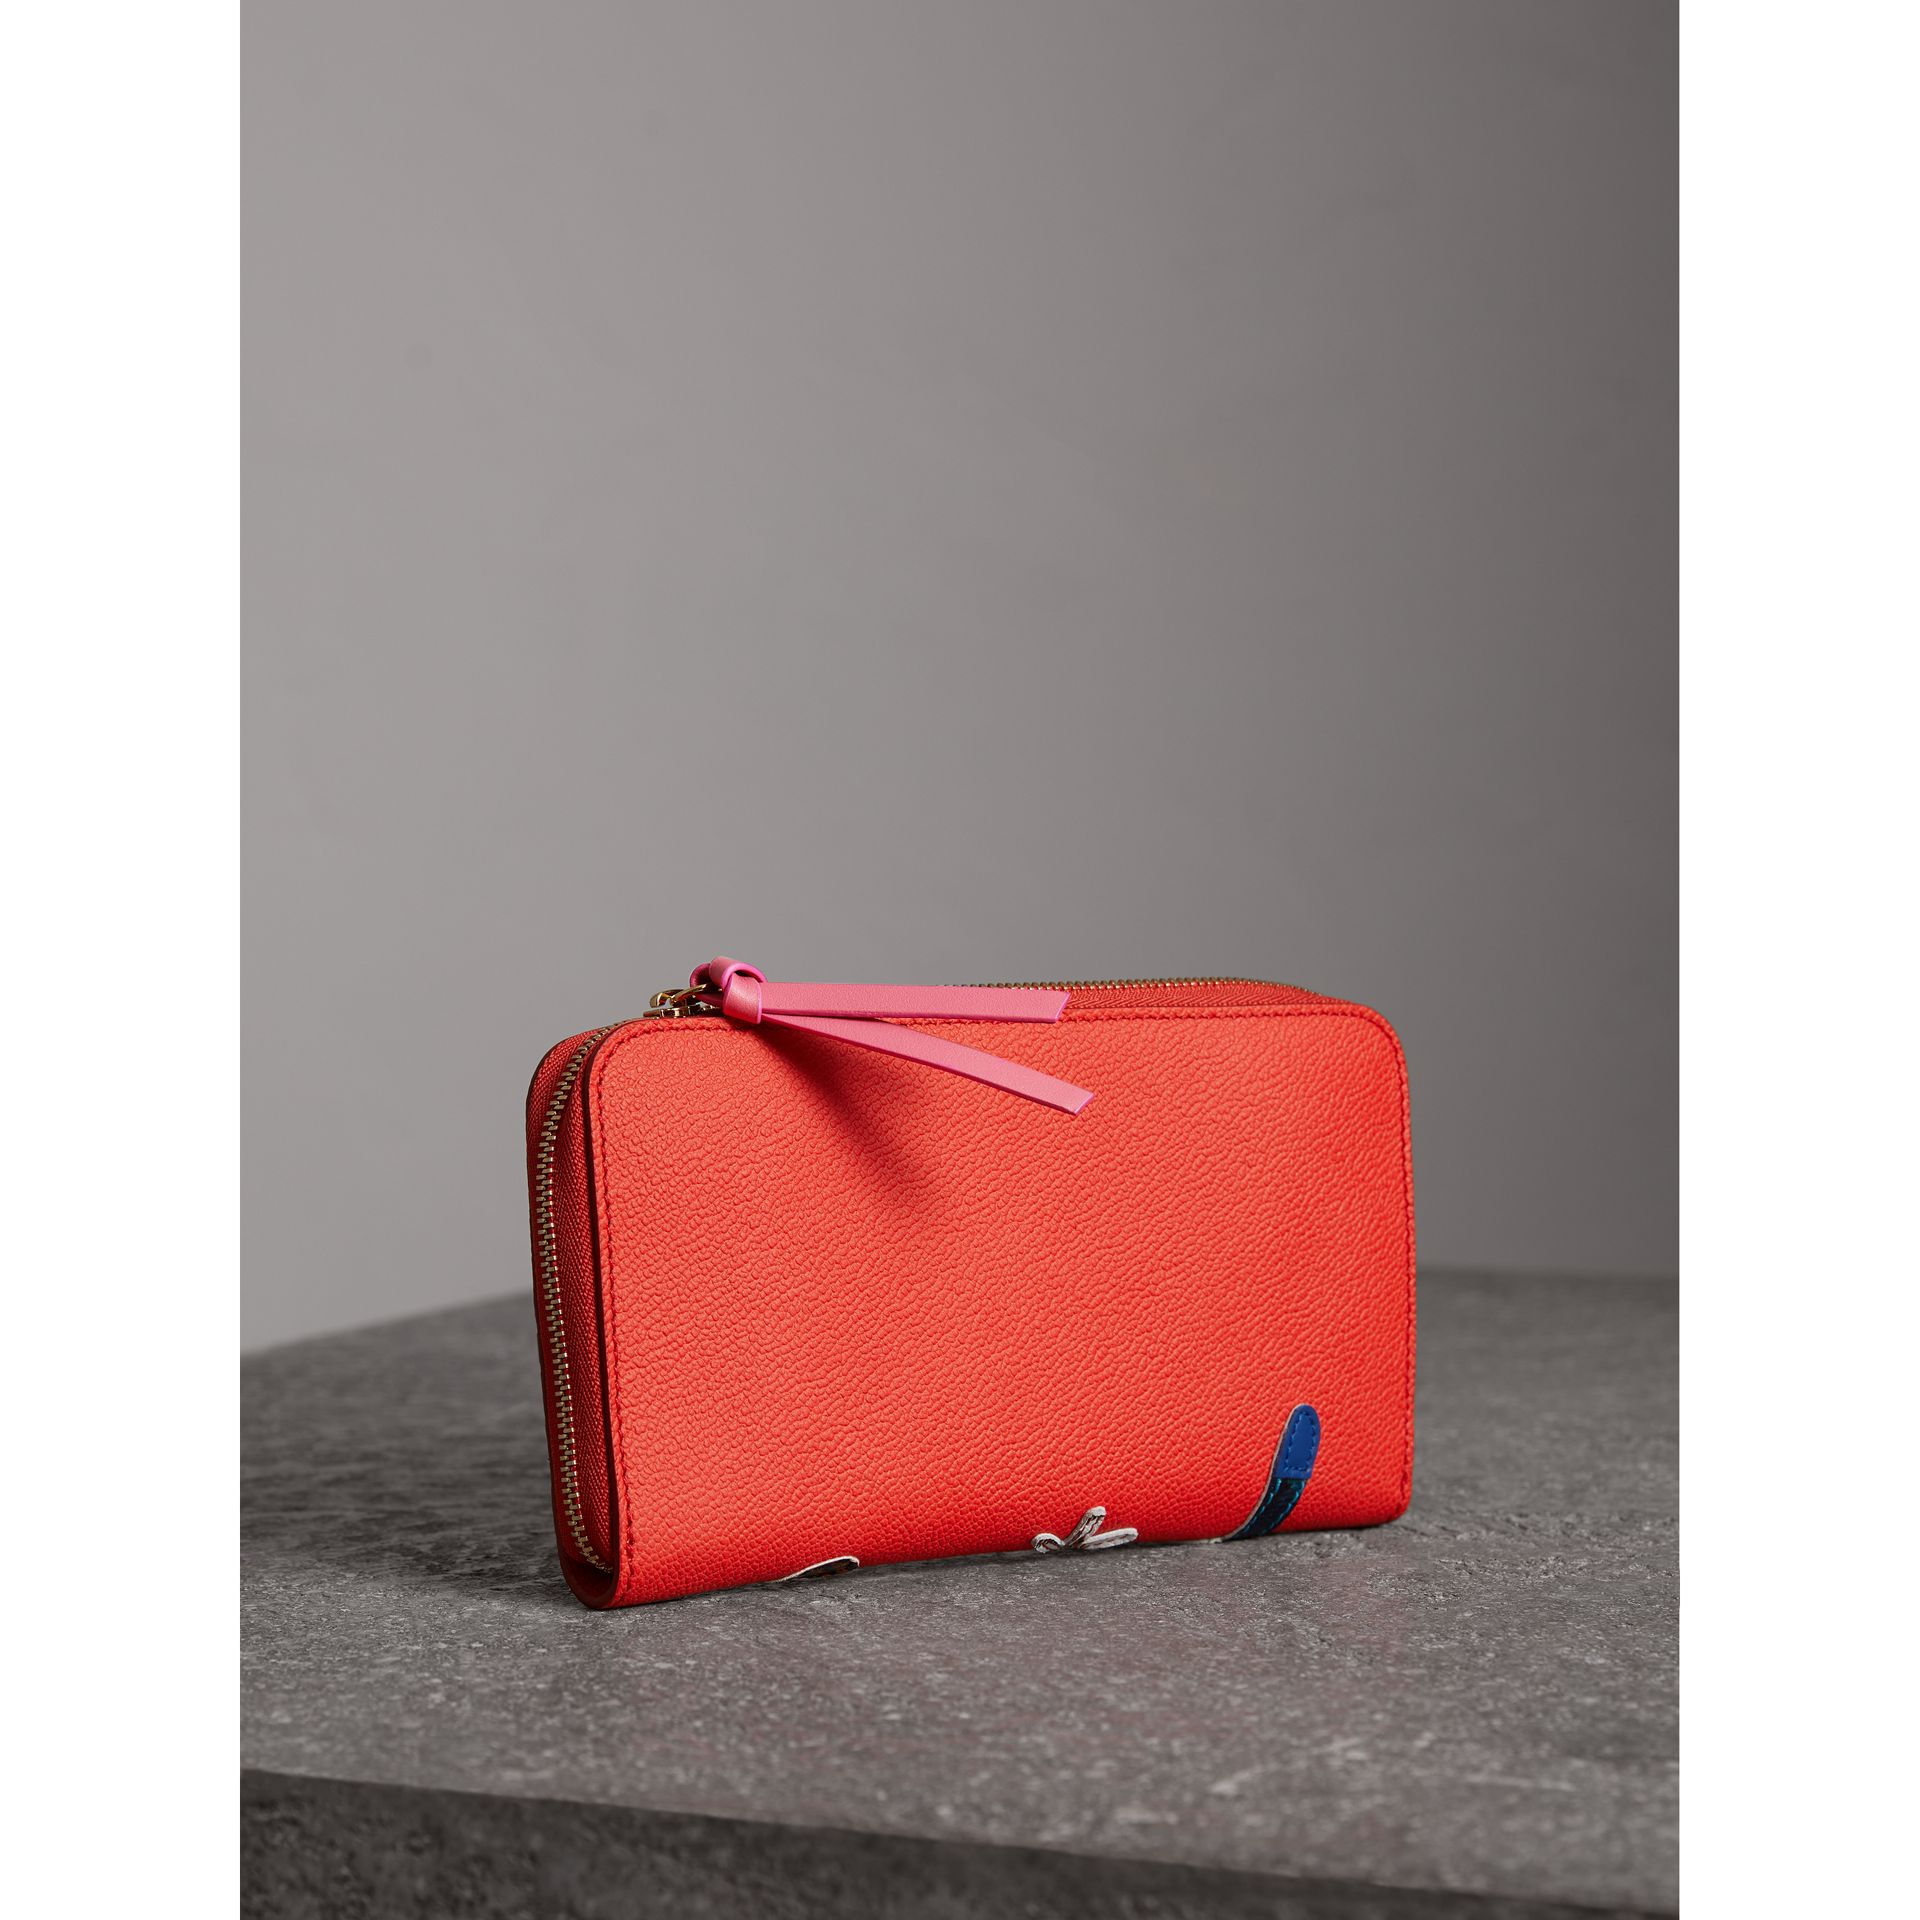 Creature Appliqué Check Leather Ziparound Wallet in Orange Red - Women | Burberry - gallery image 2